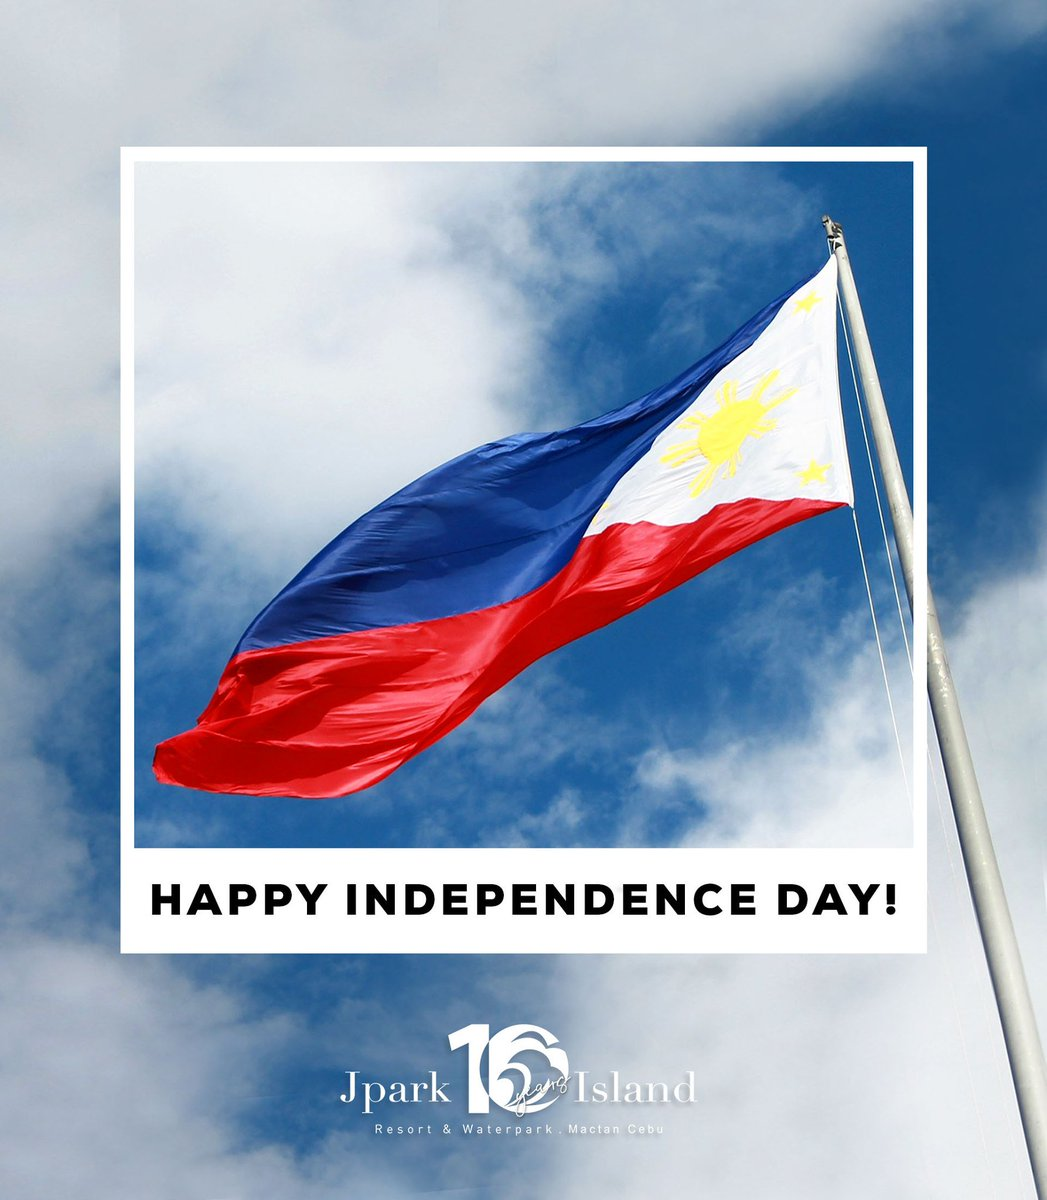 On this day in 1898, the Filipinos were set free. Let's celebrate our freedom today!  #MyJparkStory #WaterYouWaitingFor  #TenYearsOfJpark https://t.co/S0IkpbULXA